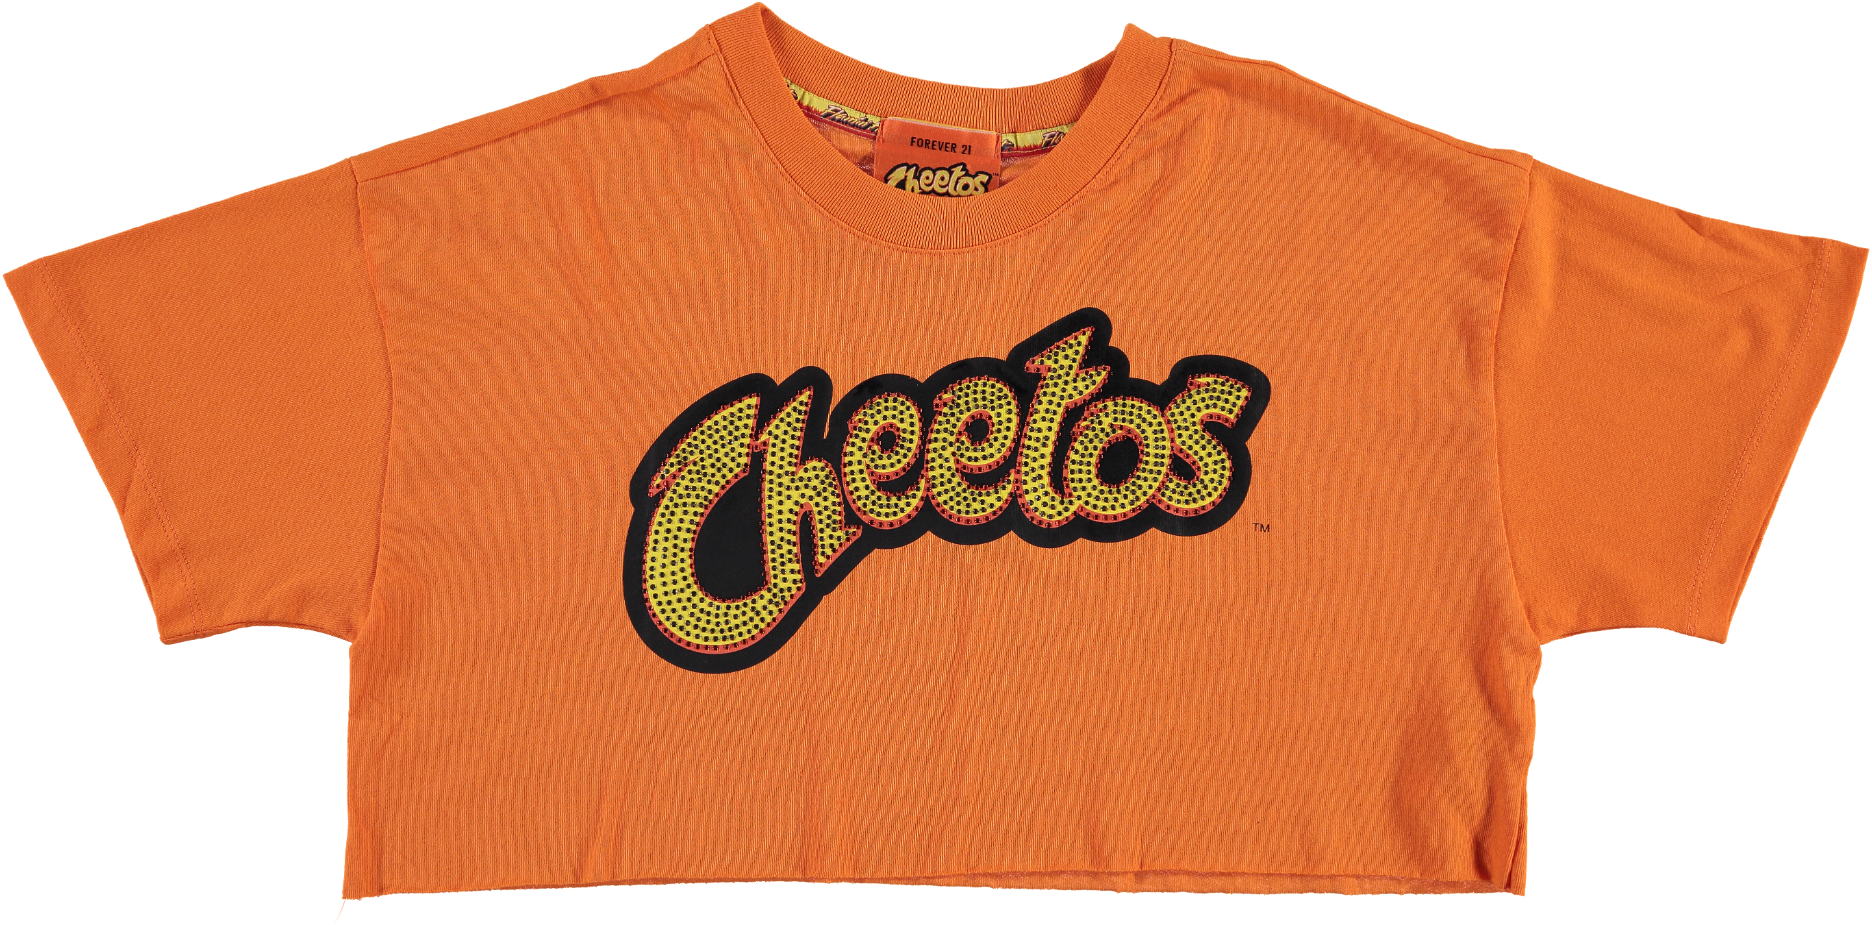 Forever 21 x Cheetos